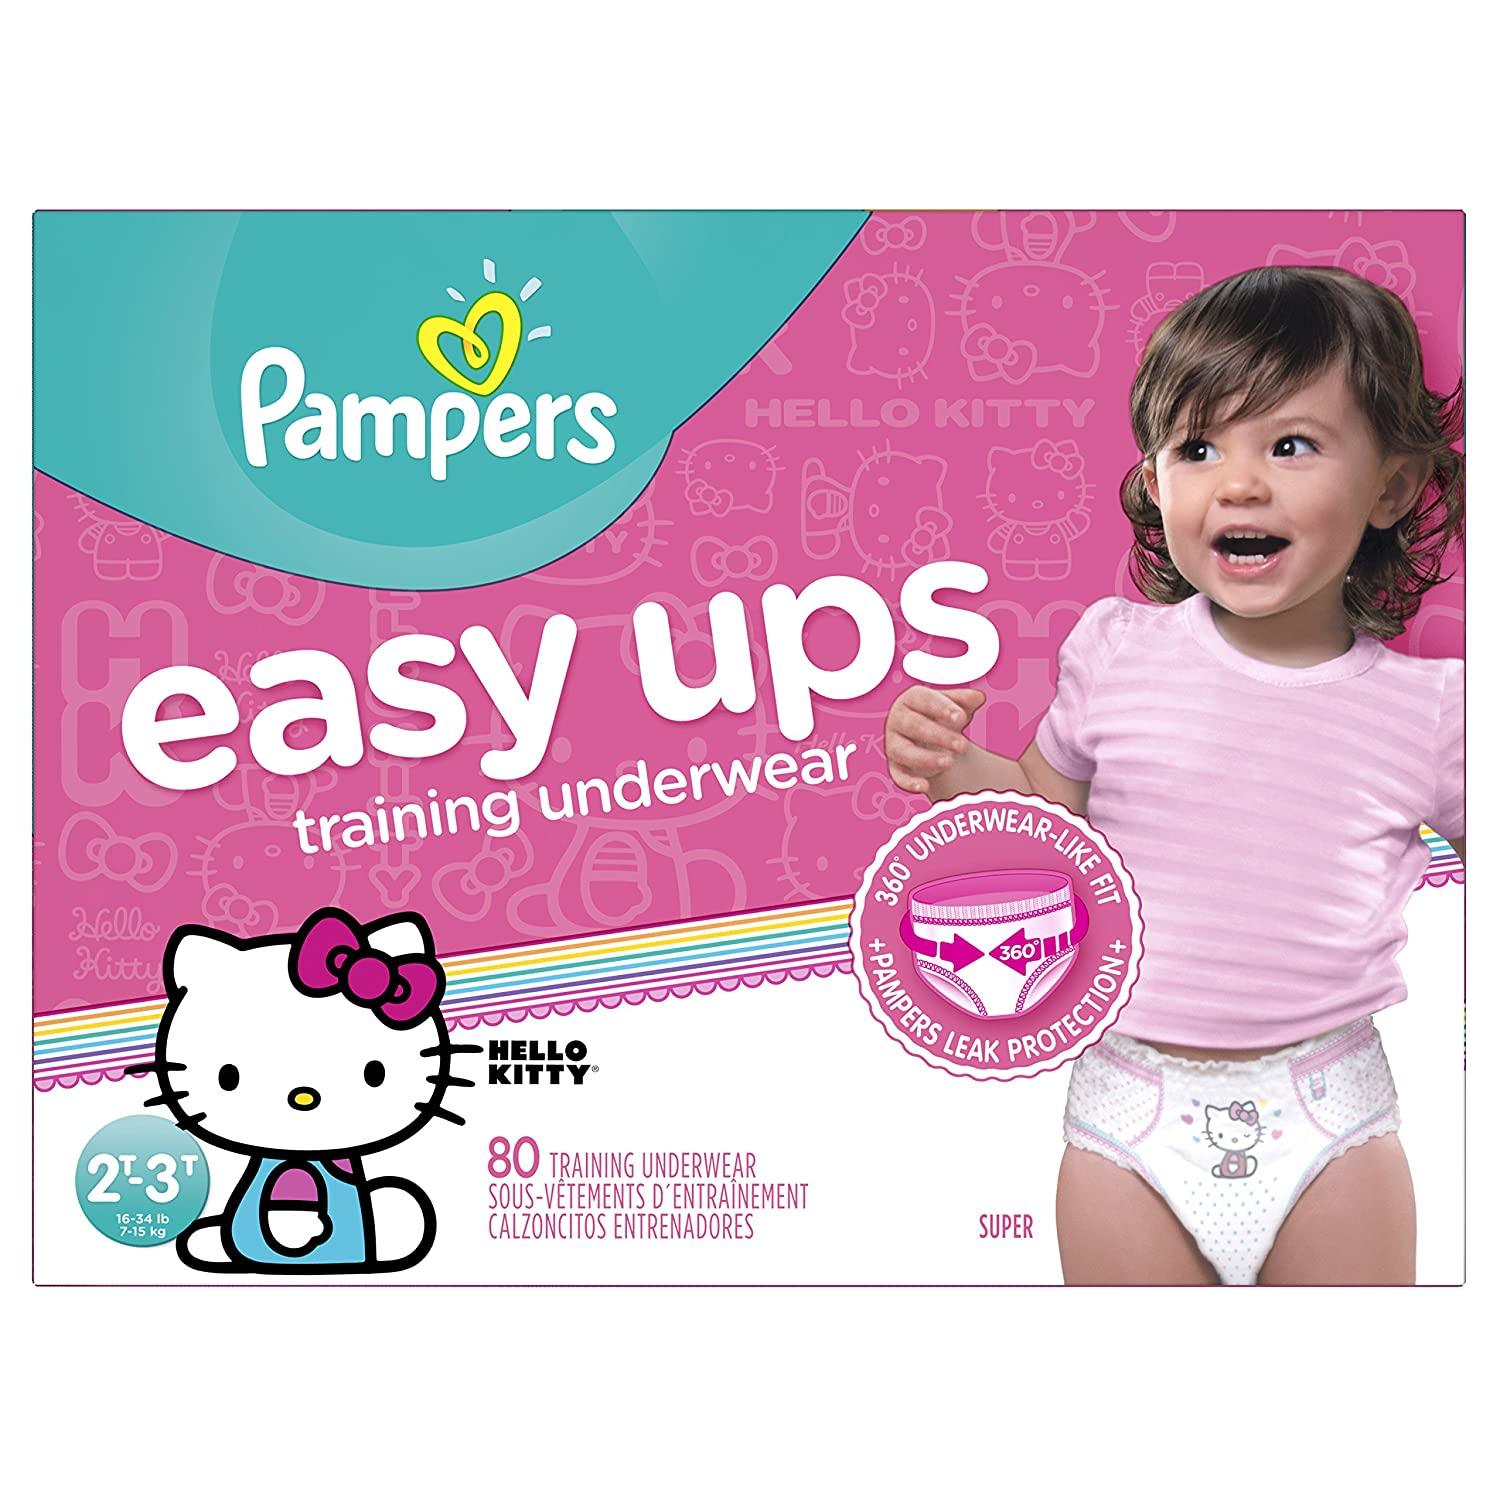 amazon com pampers easy ups training underwear girls 2t 3t size